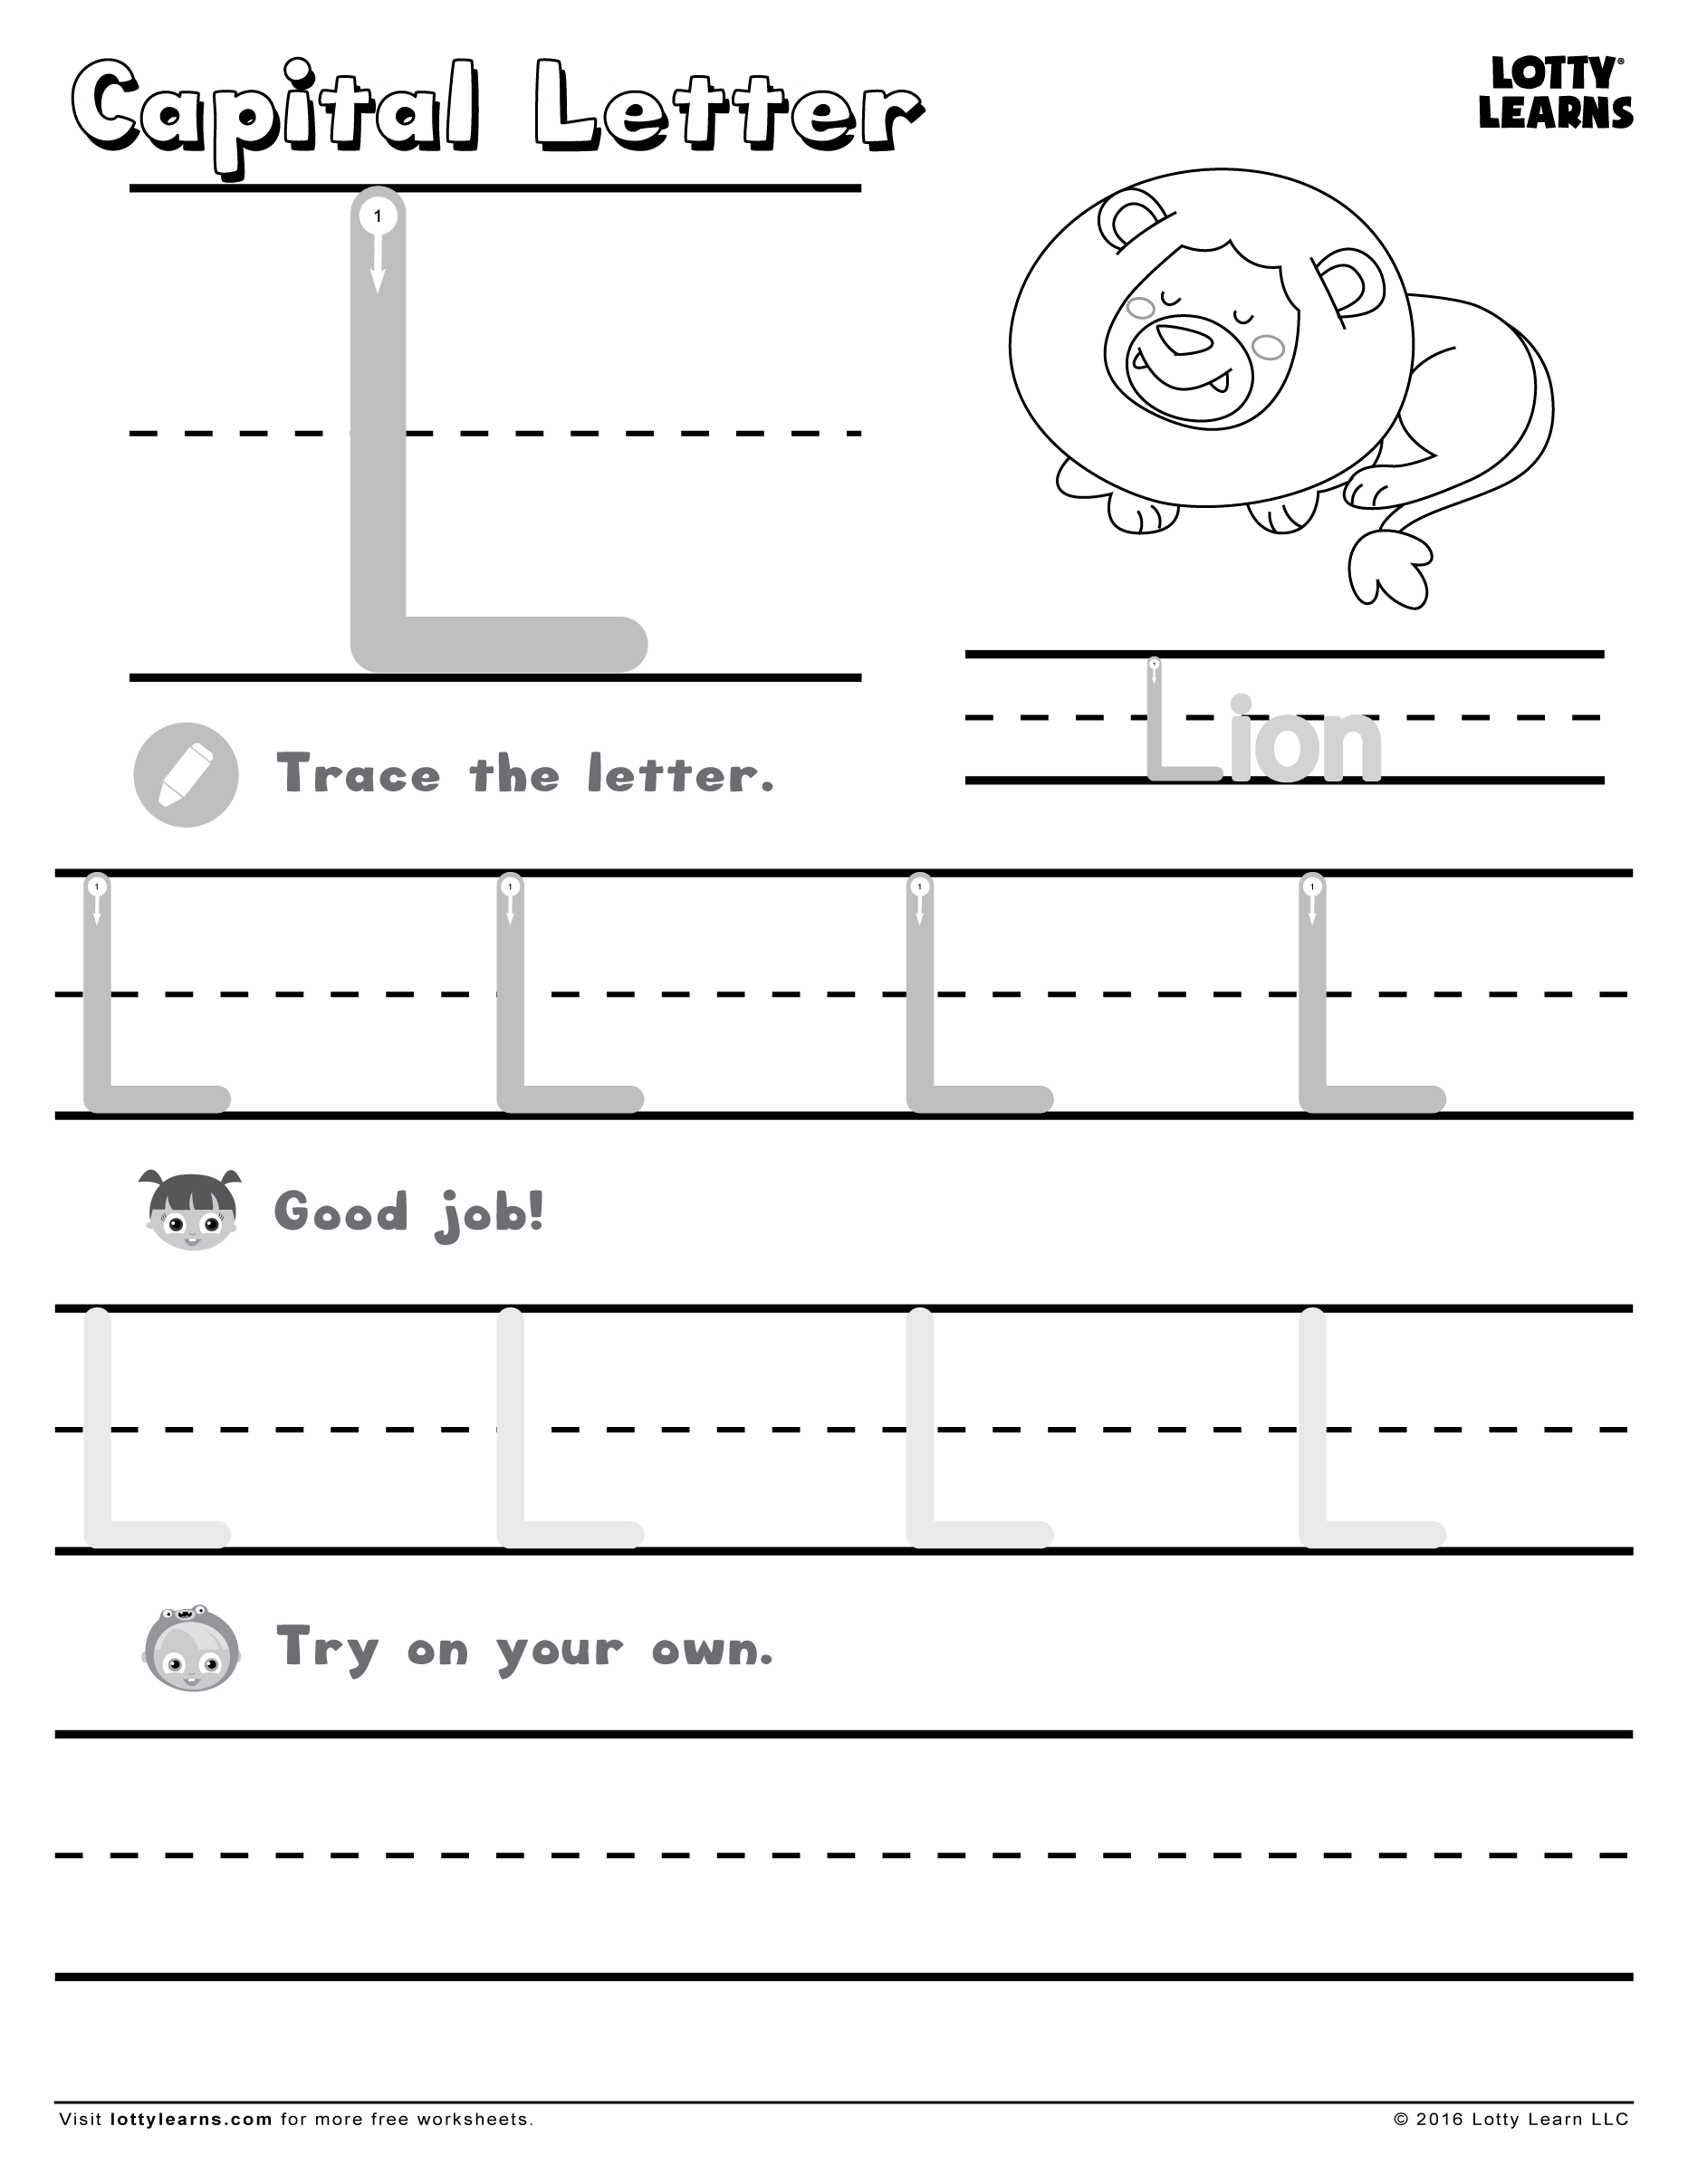 Capital Letter L | Lotty Learns with regard to Letter Ll Worksheets For Kindergarten